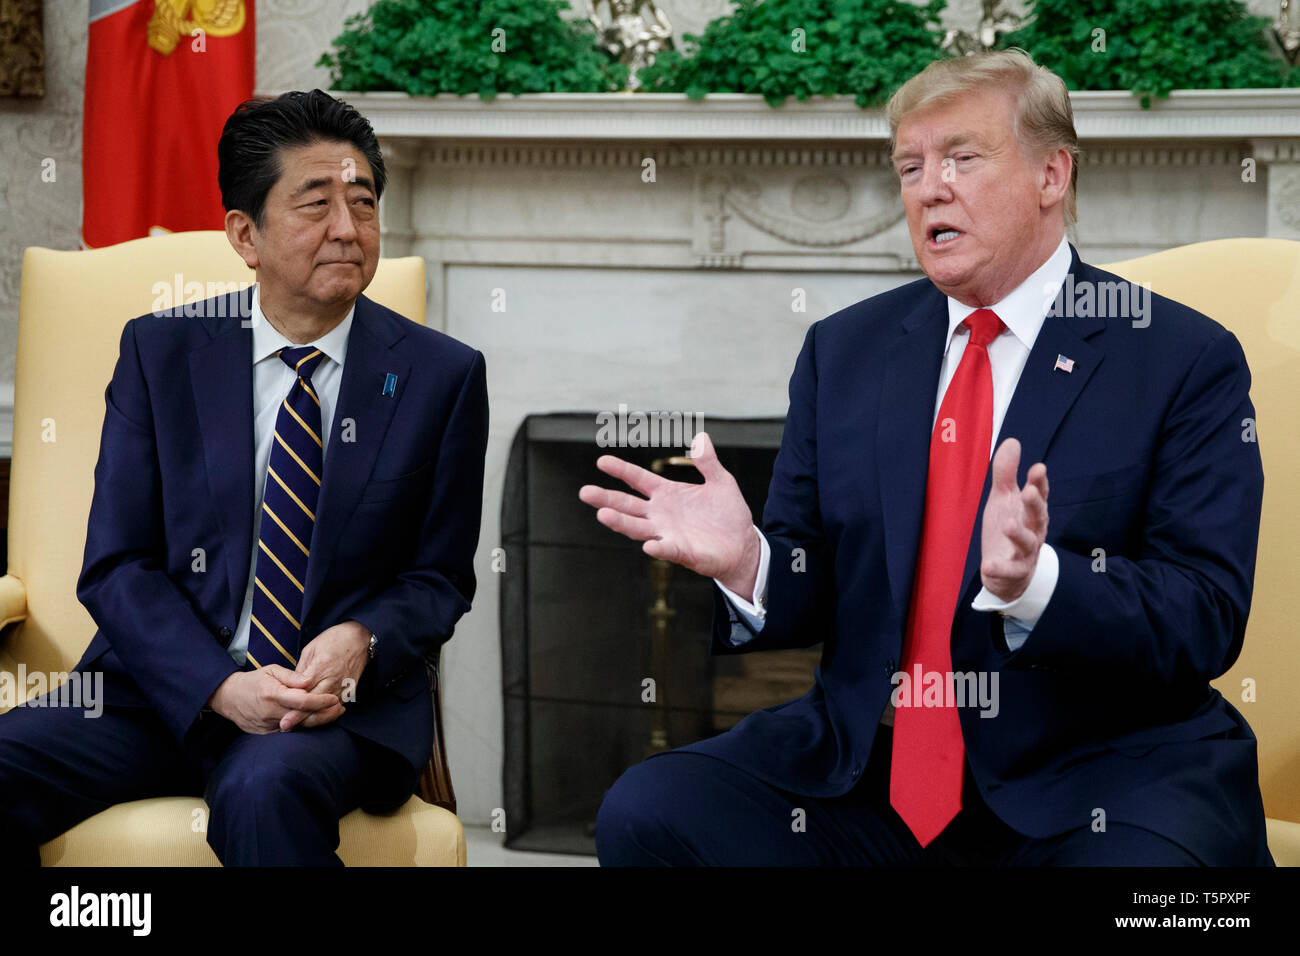 Washington, DC, USA. 26th Apr, 2019. US President Donald J. Trump meets with Japanese Prime Minister Shinzo Abe in the Oval Office of the White House in Washington, DC, USA, 26 April 2019. President Trump is hosting a dinner for Prime Minister Abe and his wife celebrating the First Lady's 49th birthday Credit: Shawn Thew/Pool via CNP | usage worldwide Credit: dpa/Alamy Live News Stock Photo